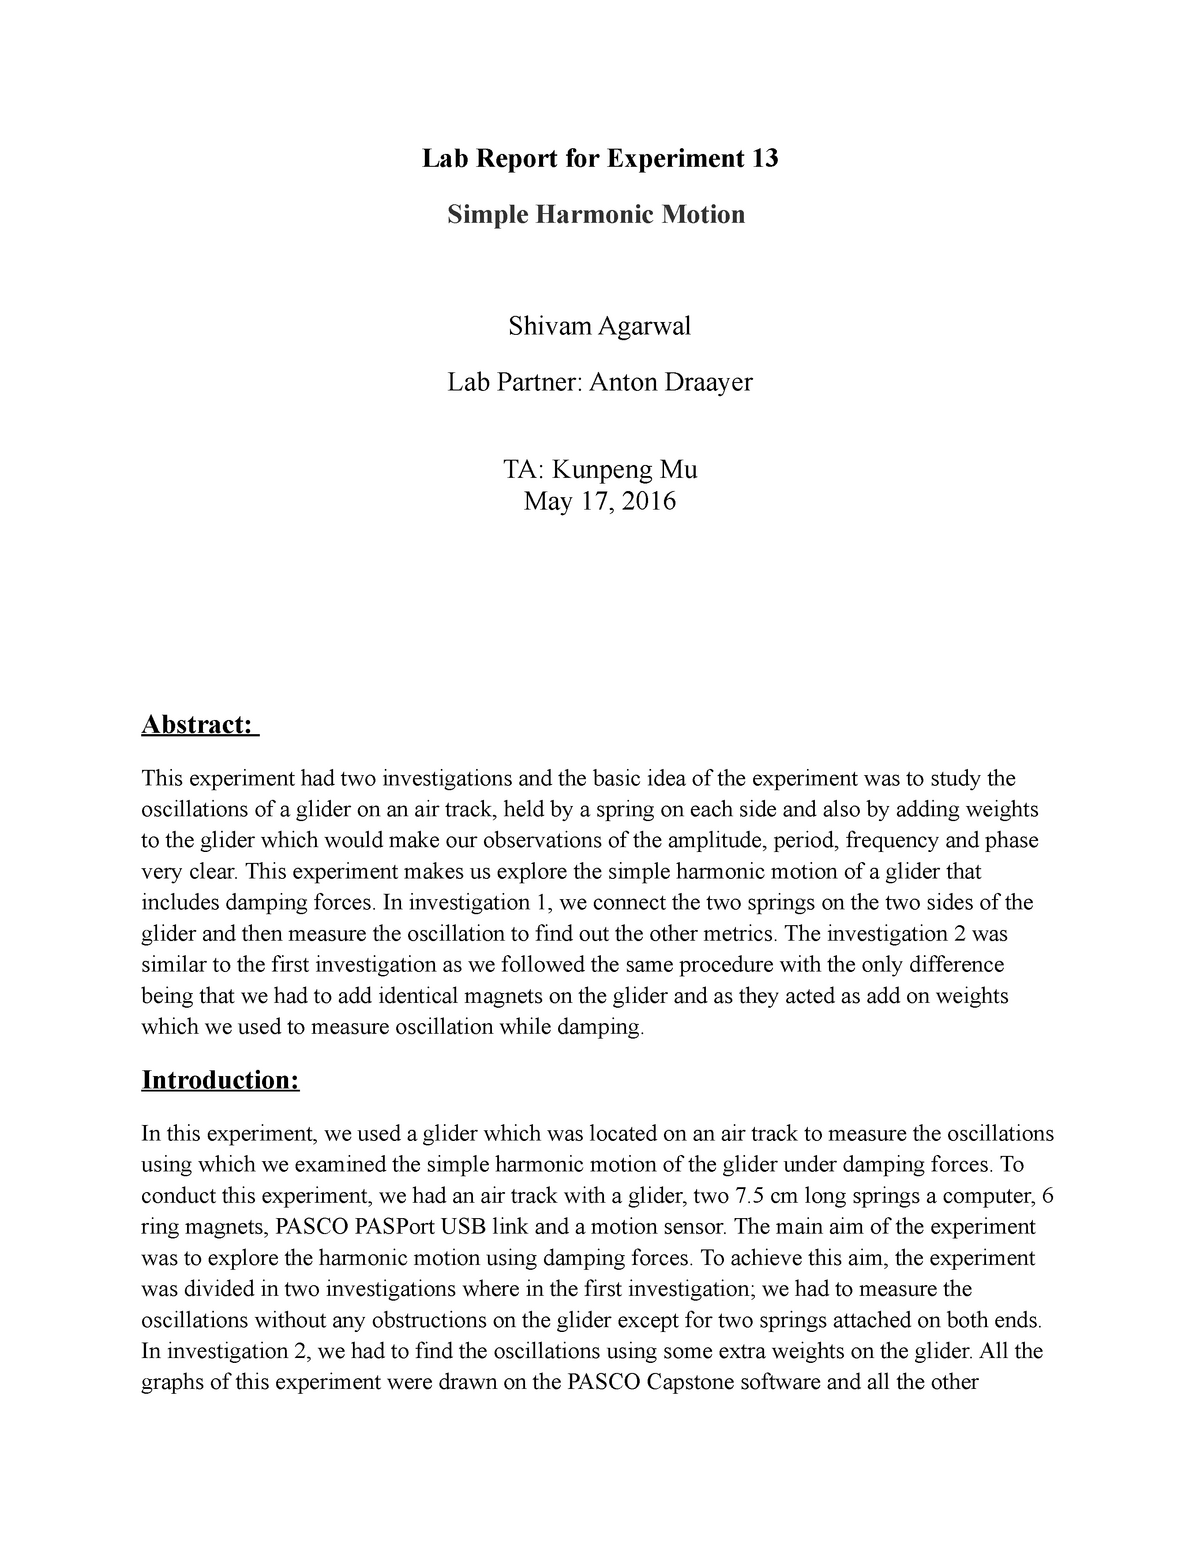 Lab 1 - This is a Lab report for a physics experiment on